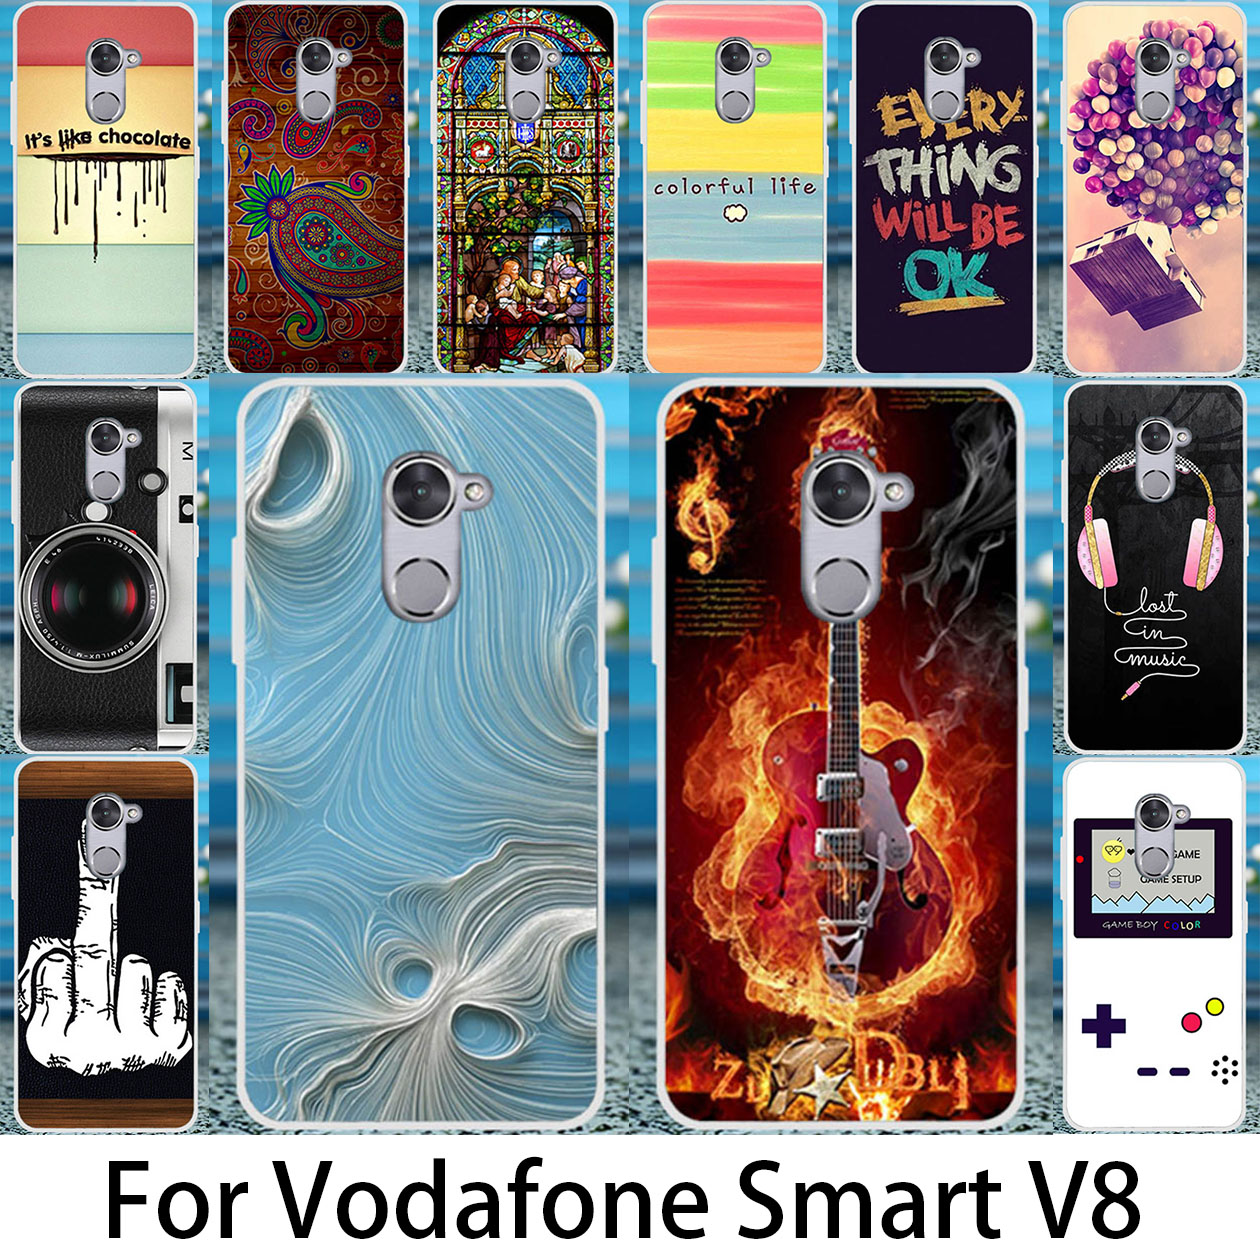 promo code 214d8 2bdfe US $1.58 20% OFF|Akabeila DIY Painted Case Cover For Vodafone Smart V8  VFD710 VFD 710 VFD 710 Phone Covers Silicone Back Housing-in Fitted Cases  from ...